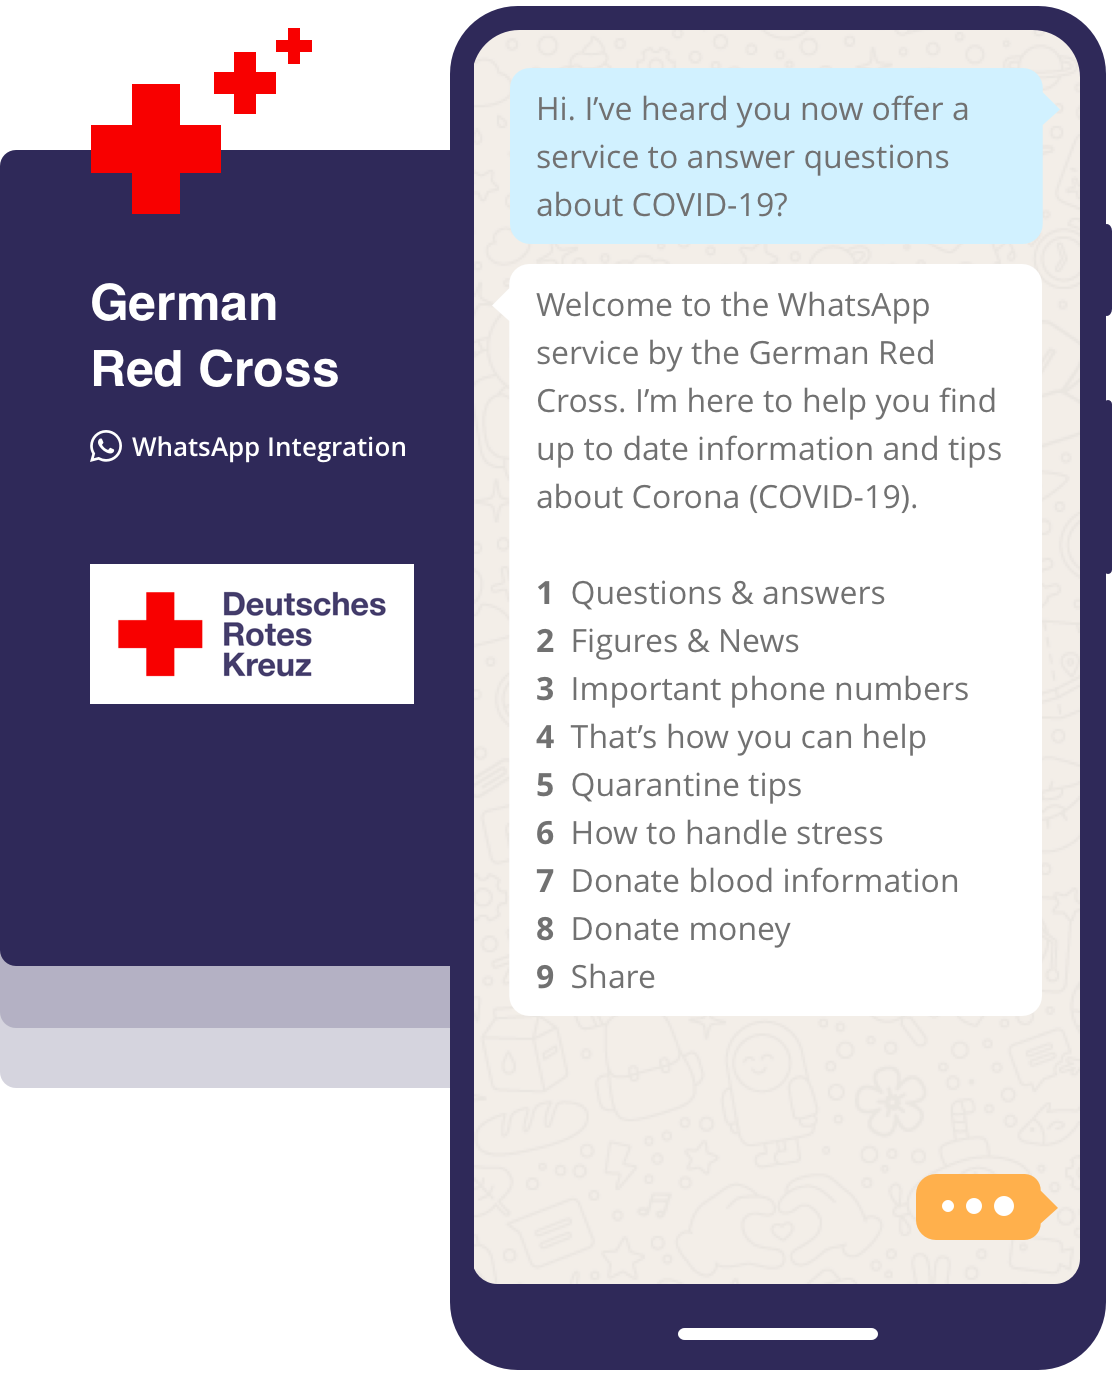 image_covid_19_german_red_cross_2x